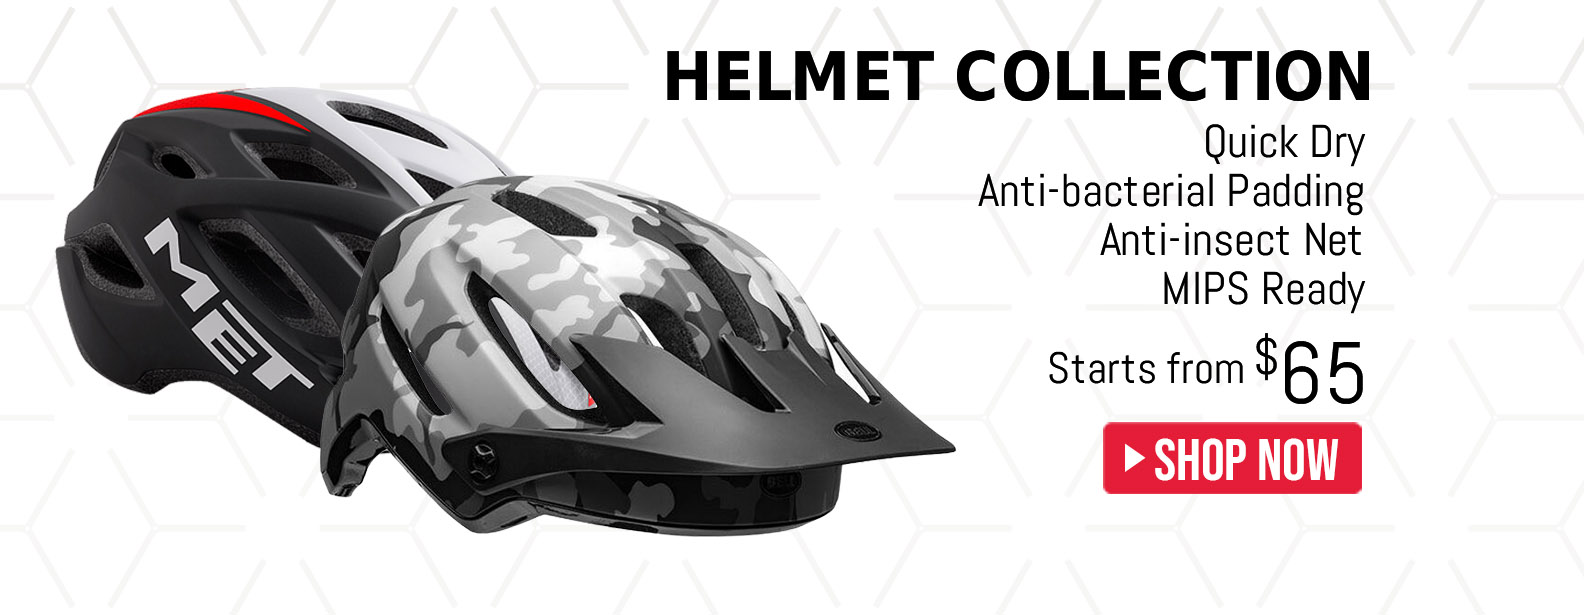 Buy Helm Collection